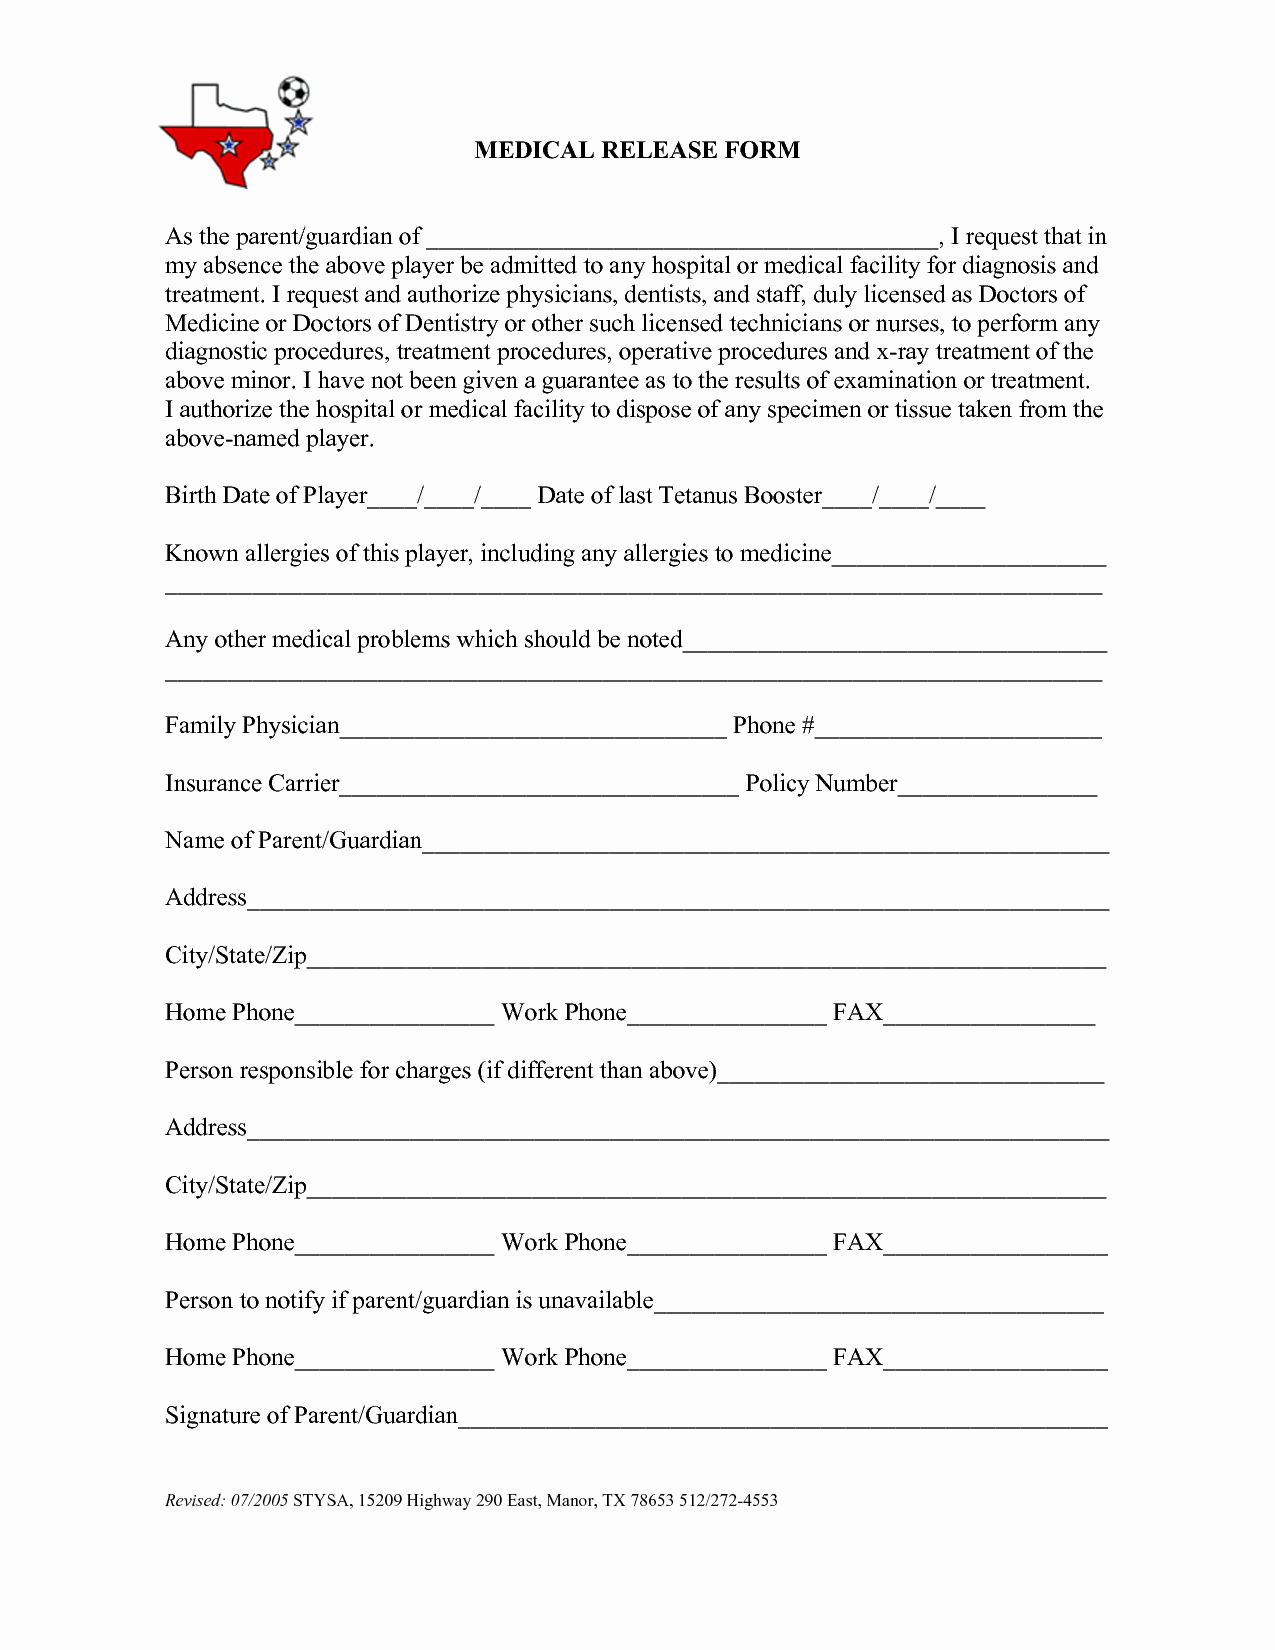 Emergency Room Release form Template Unique Best S Of Medical Release Back to Work Work Release